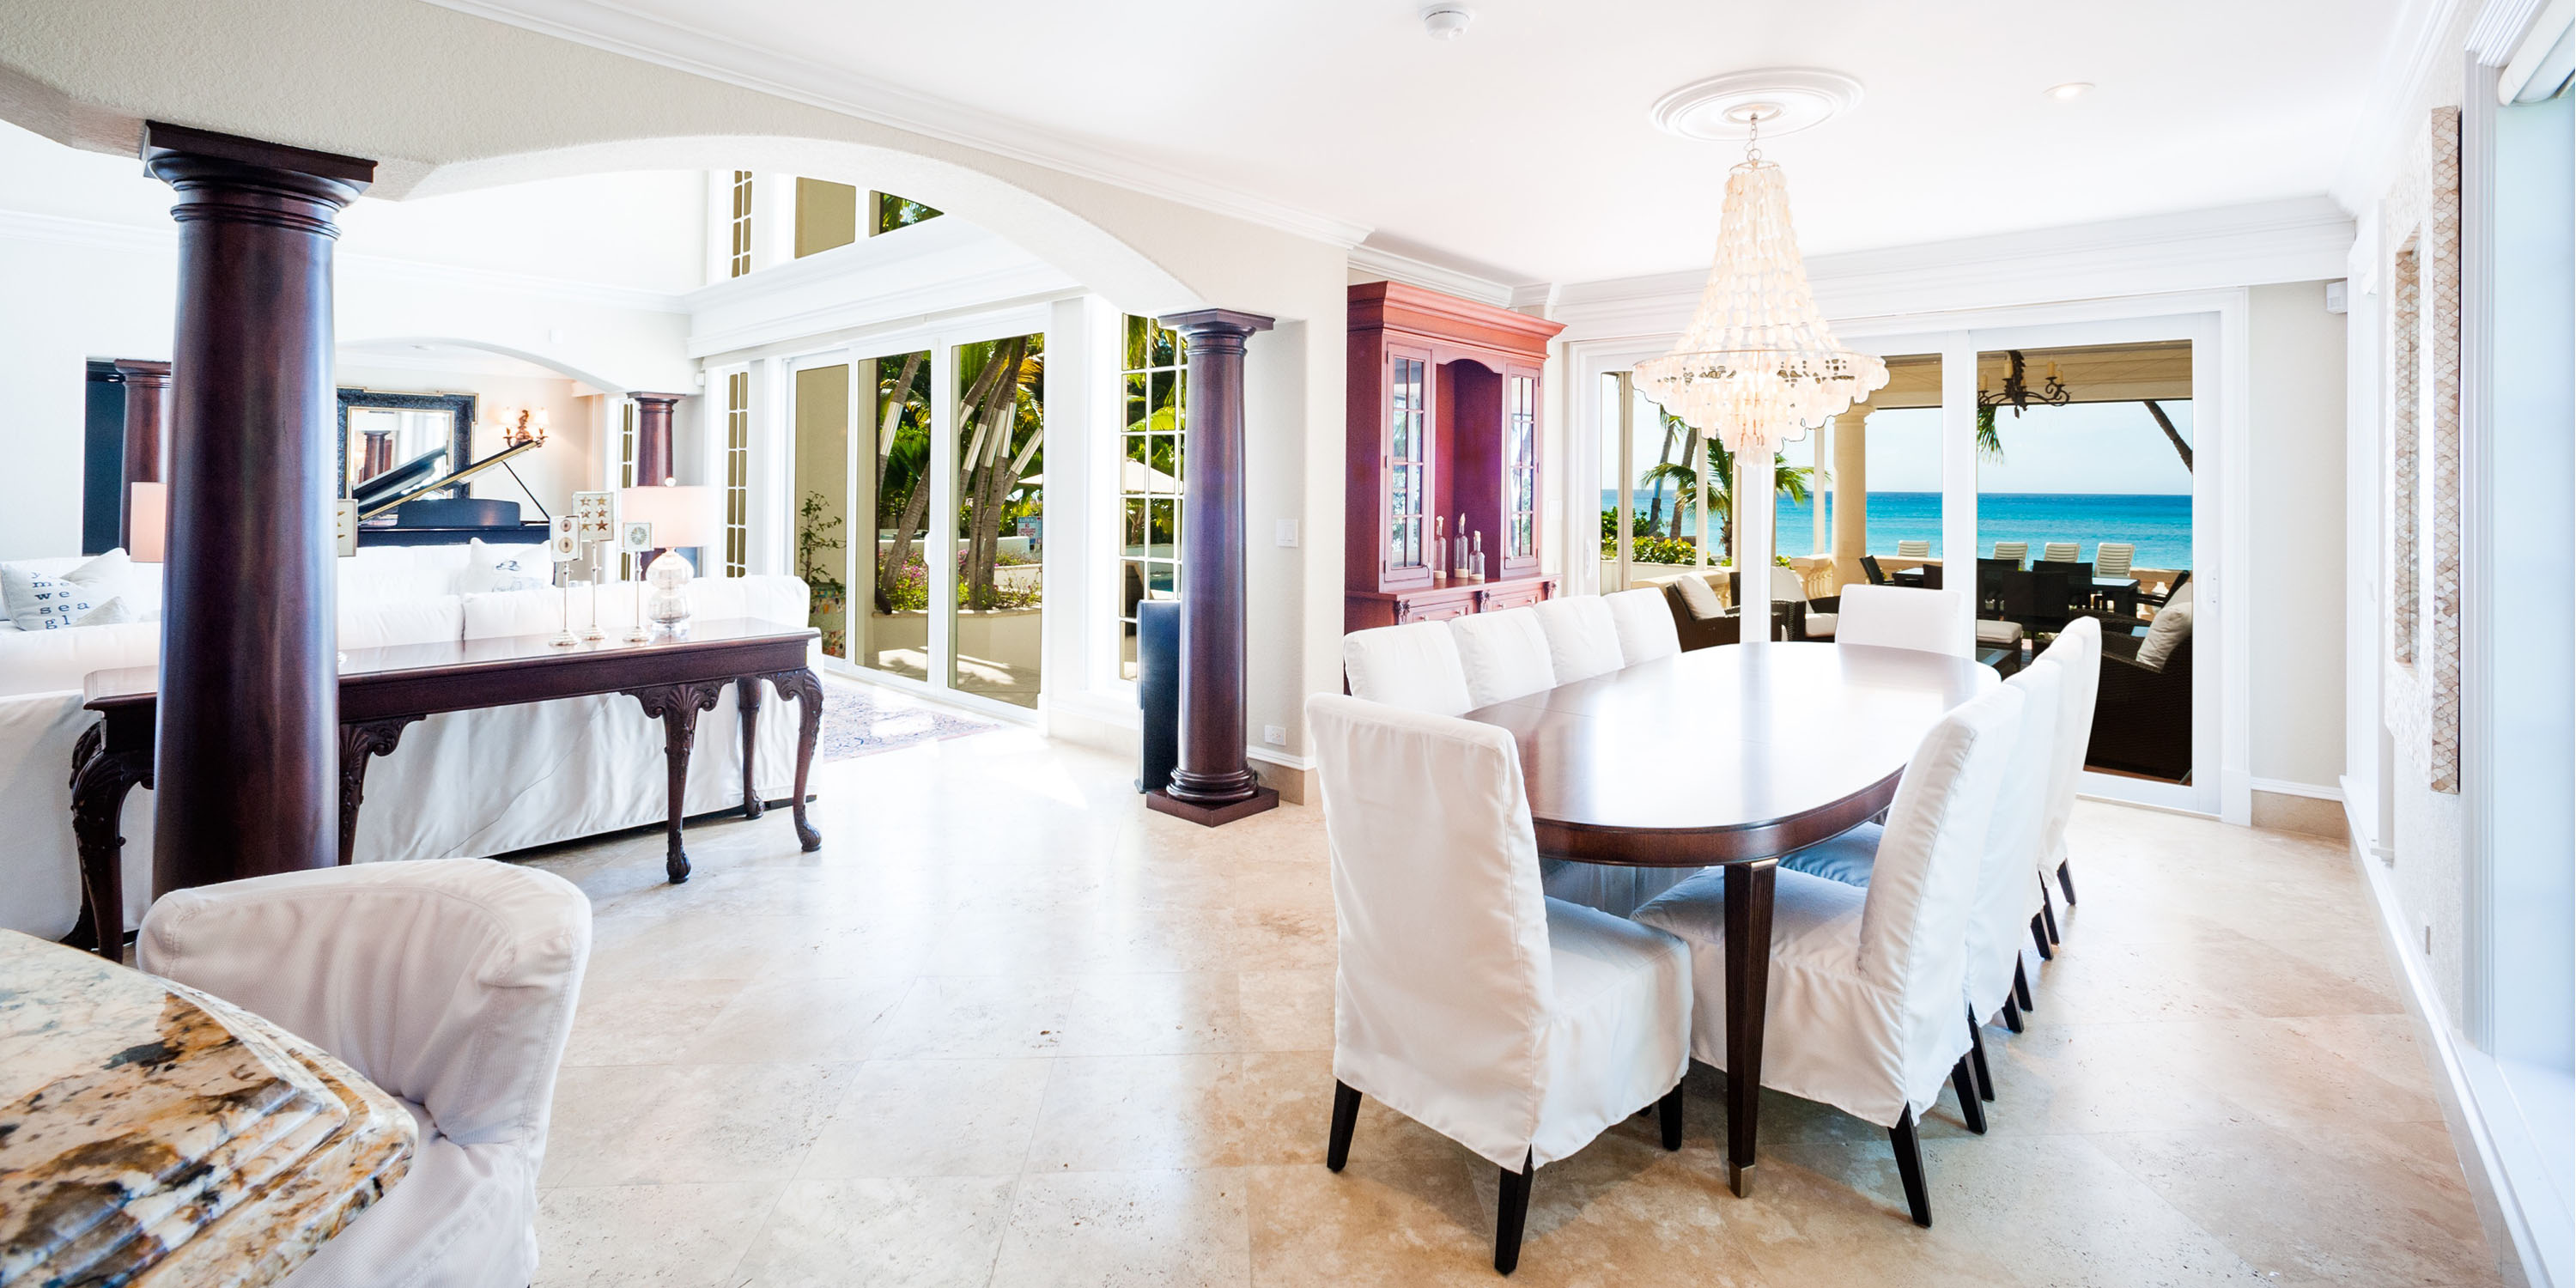 Coconut Walk Villa | Grand Cayman Villas & Condos